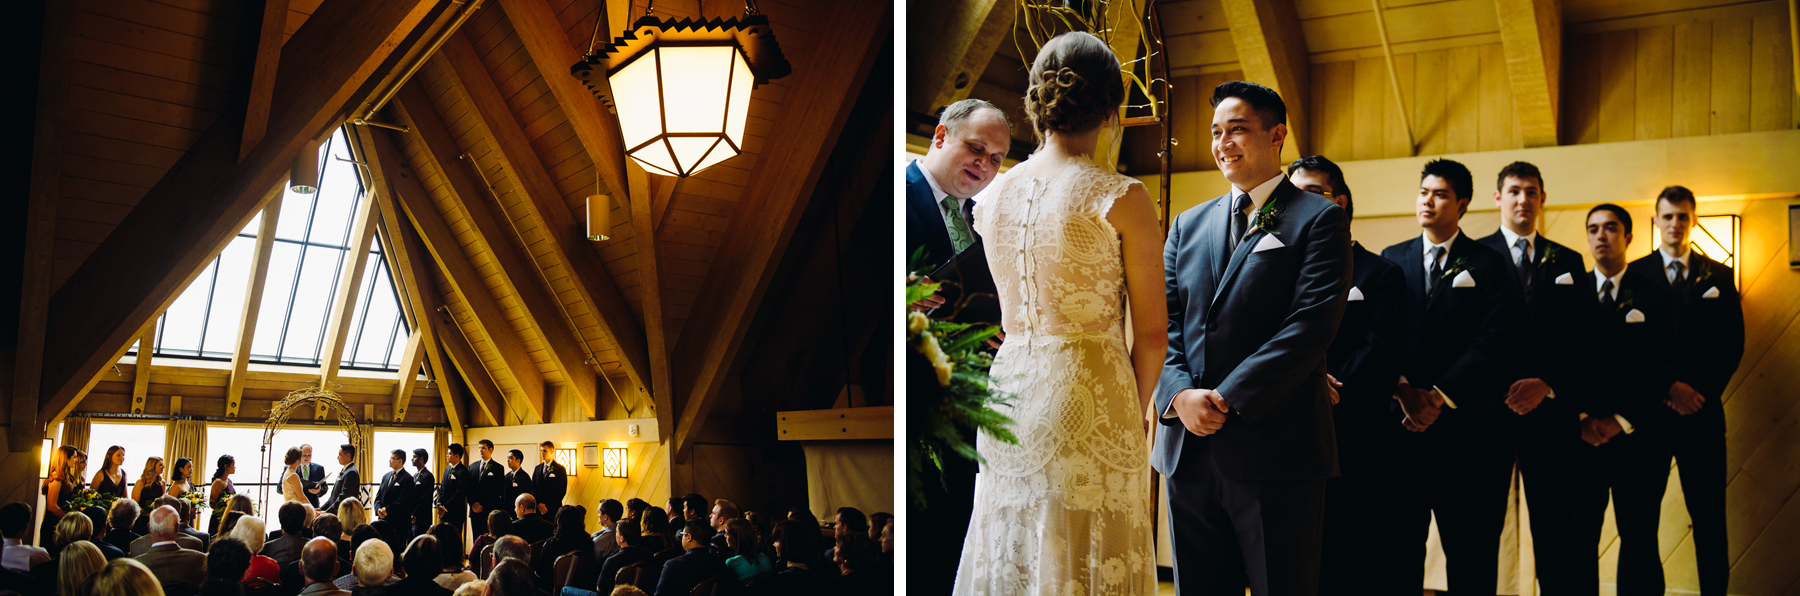 timberline-lodge-wedding-photos-15